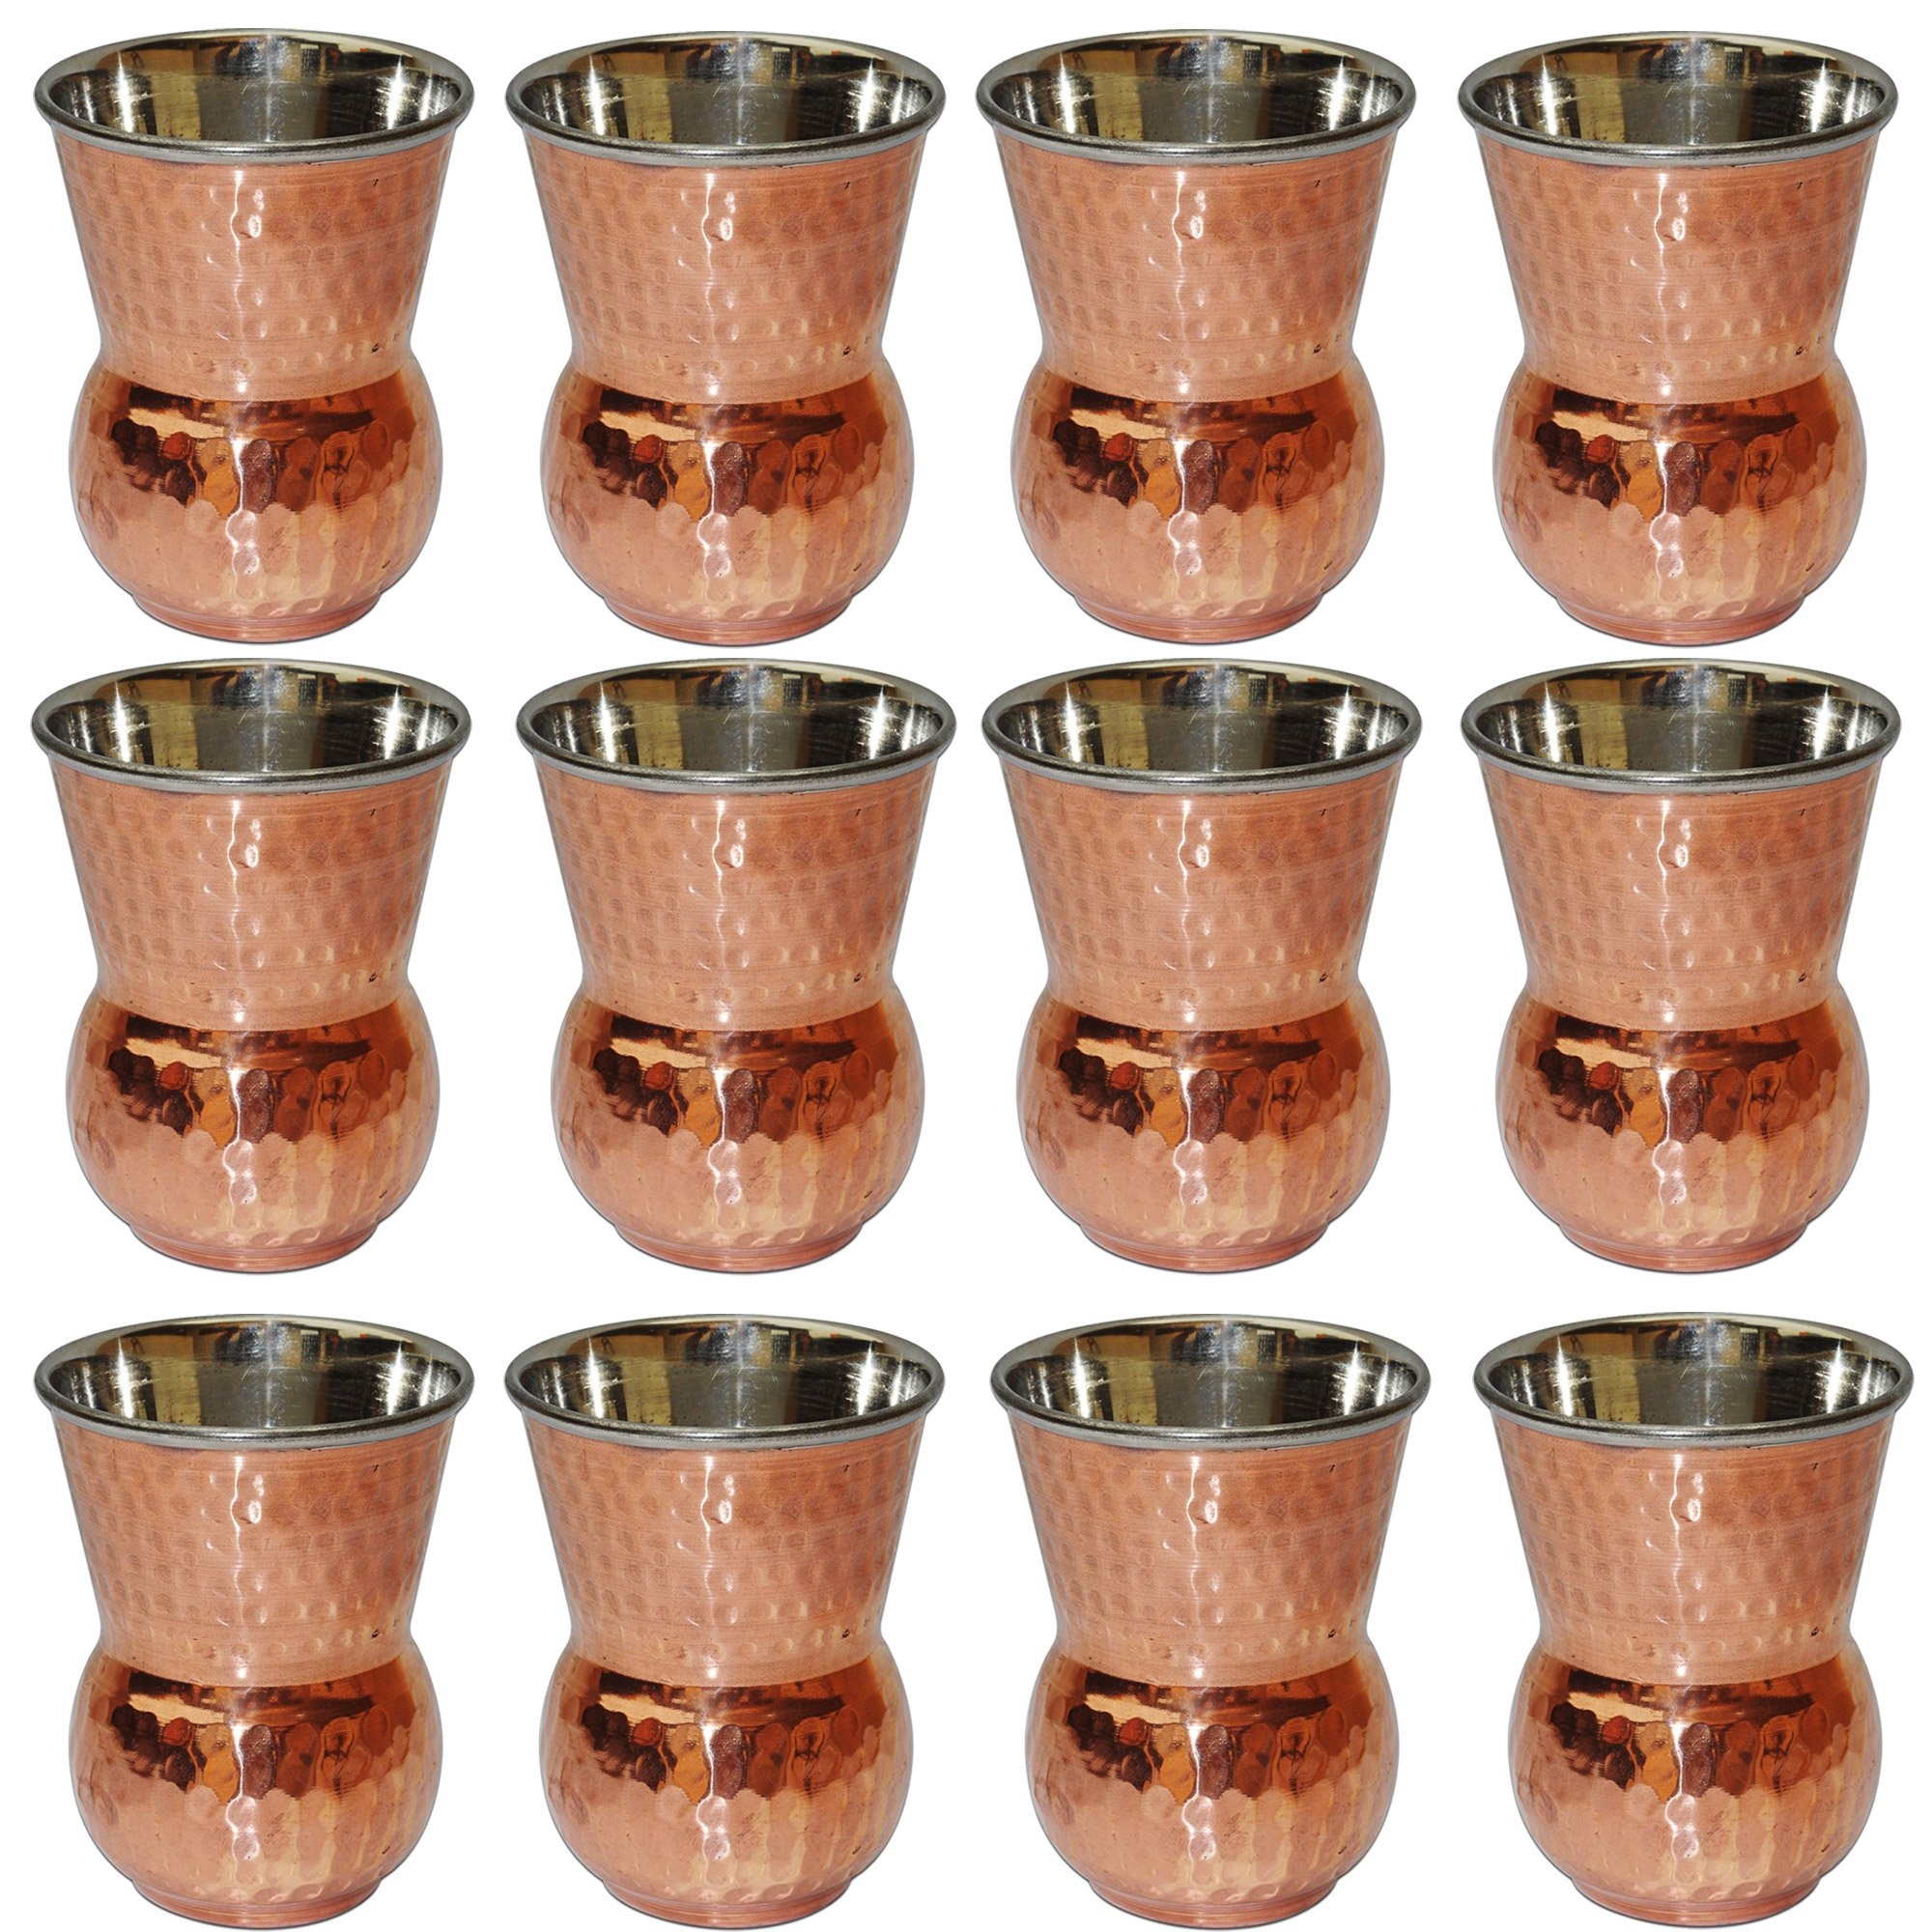 Copper Water Glasses Set of 12 - Indian Drinkware Accessory Mughal Style Tumbler, Capacity 400 Ml